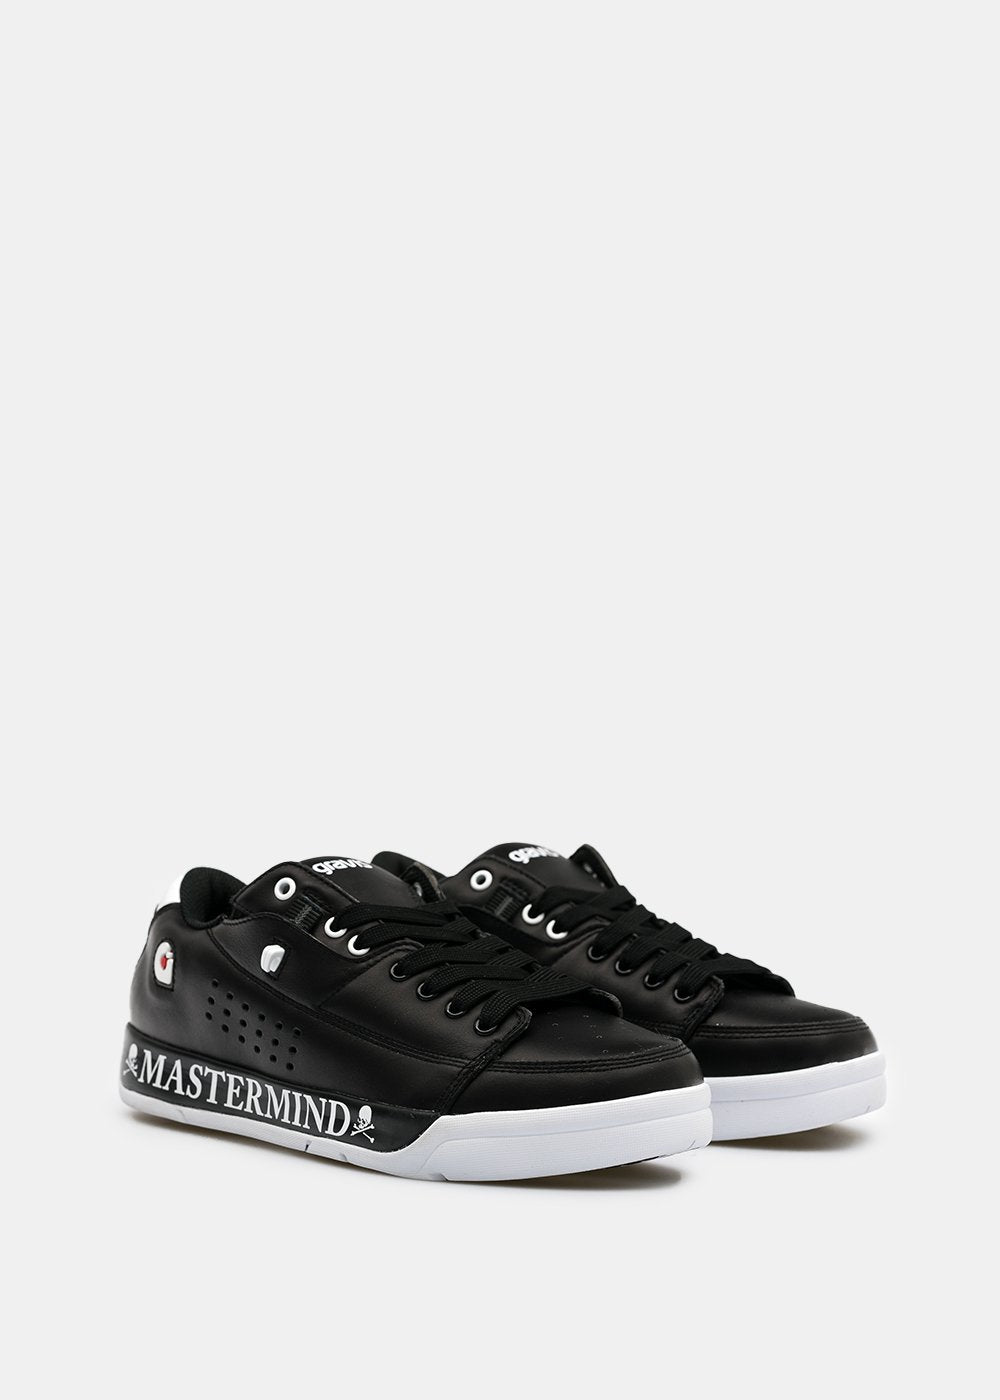 Black & White Gravis Tarmac Sneakers